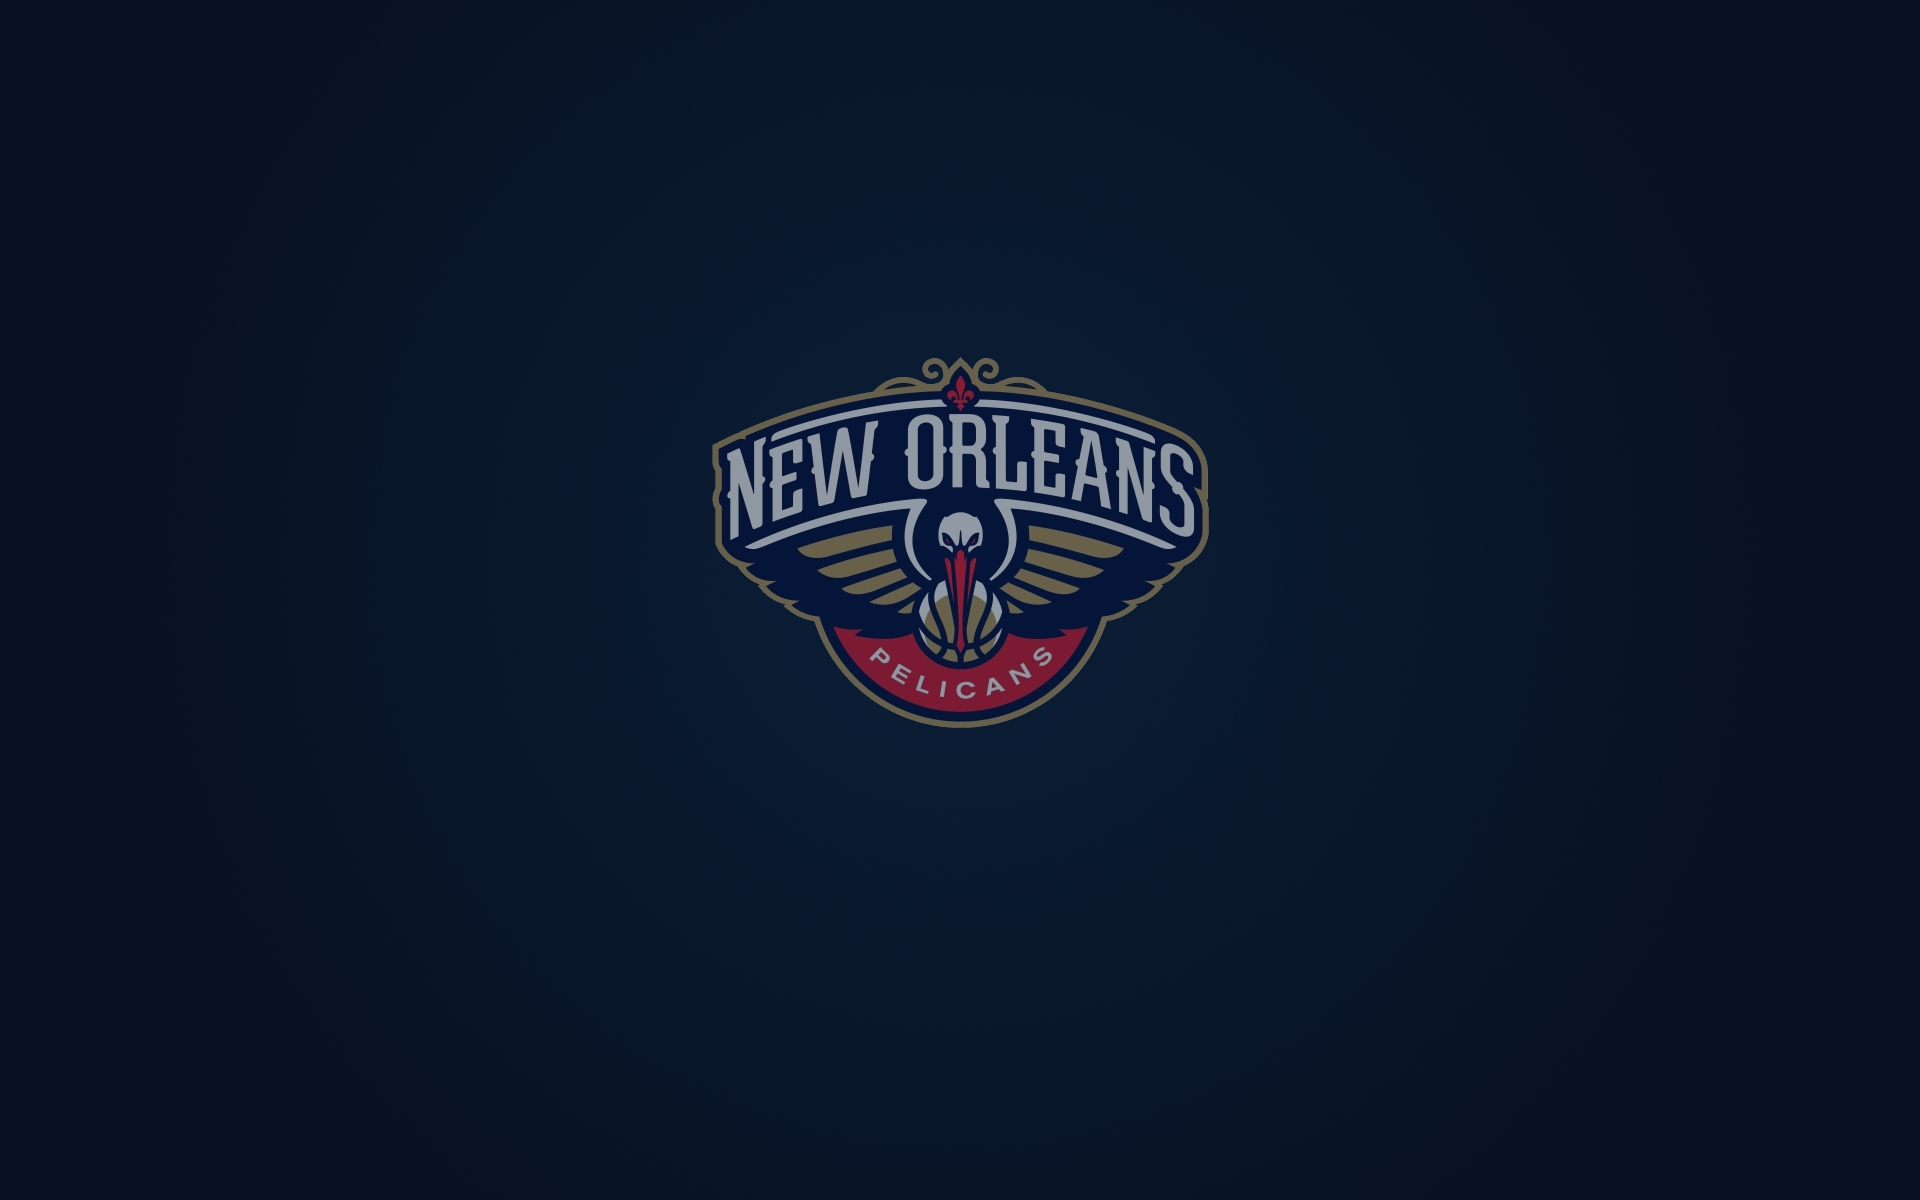 New Orleans Pelicans Wallpaper And Logo 1920 1200